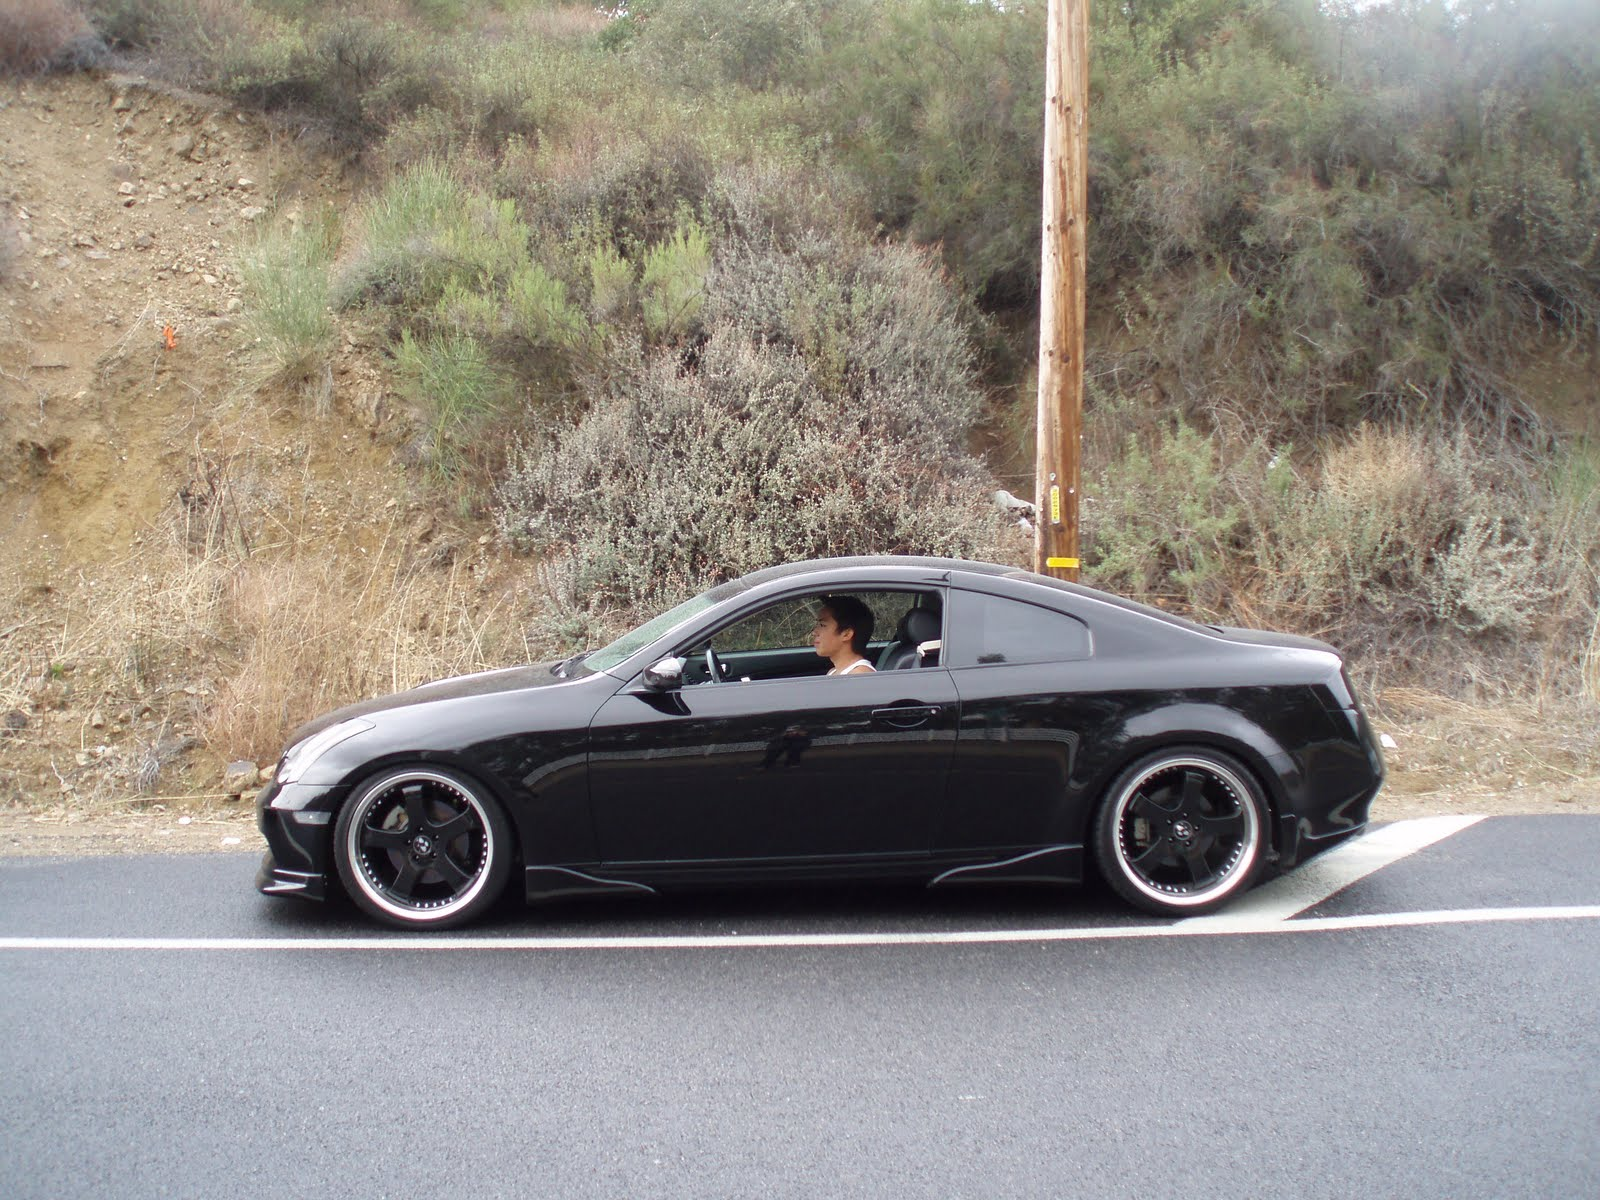 Kty projects for sale 2005 g35 coupe black 2005 infiniti g35 coupe vanachro Choice Image